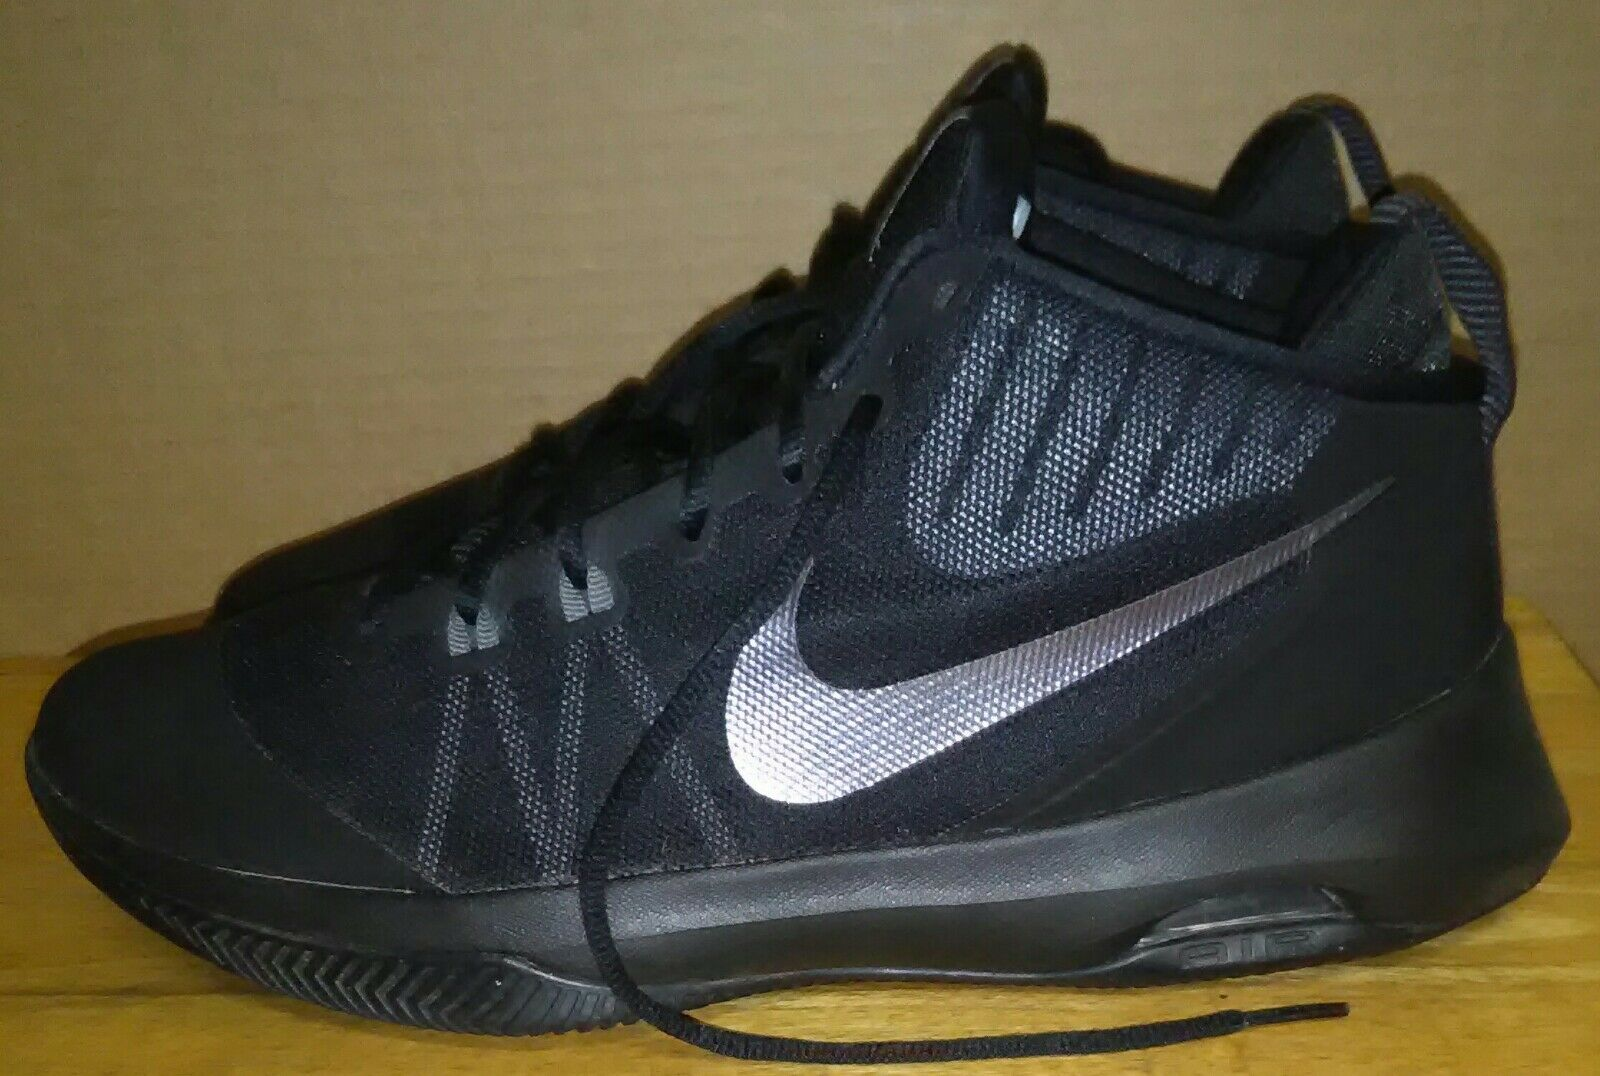 cheaper f05c6 72fed ... low price 2016 nike air versitile 852433 001 nbk schwarz grau 852433  001 versitile schuhe mens